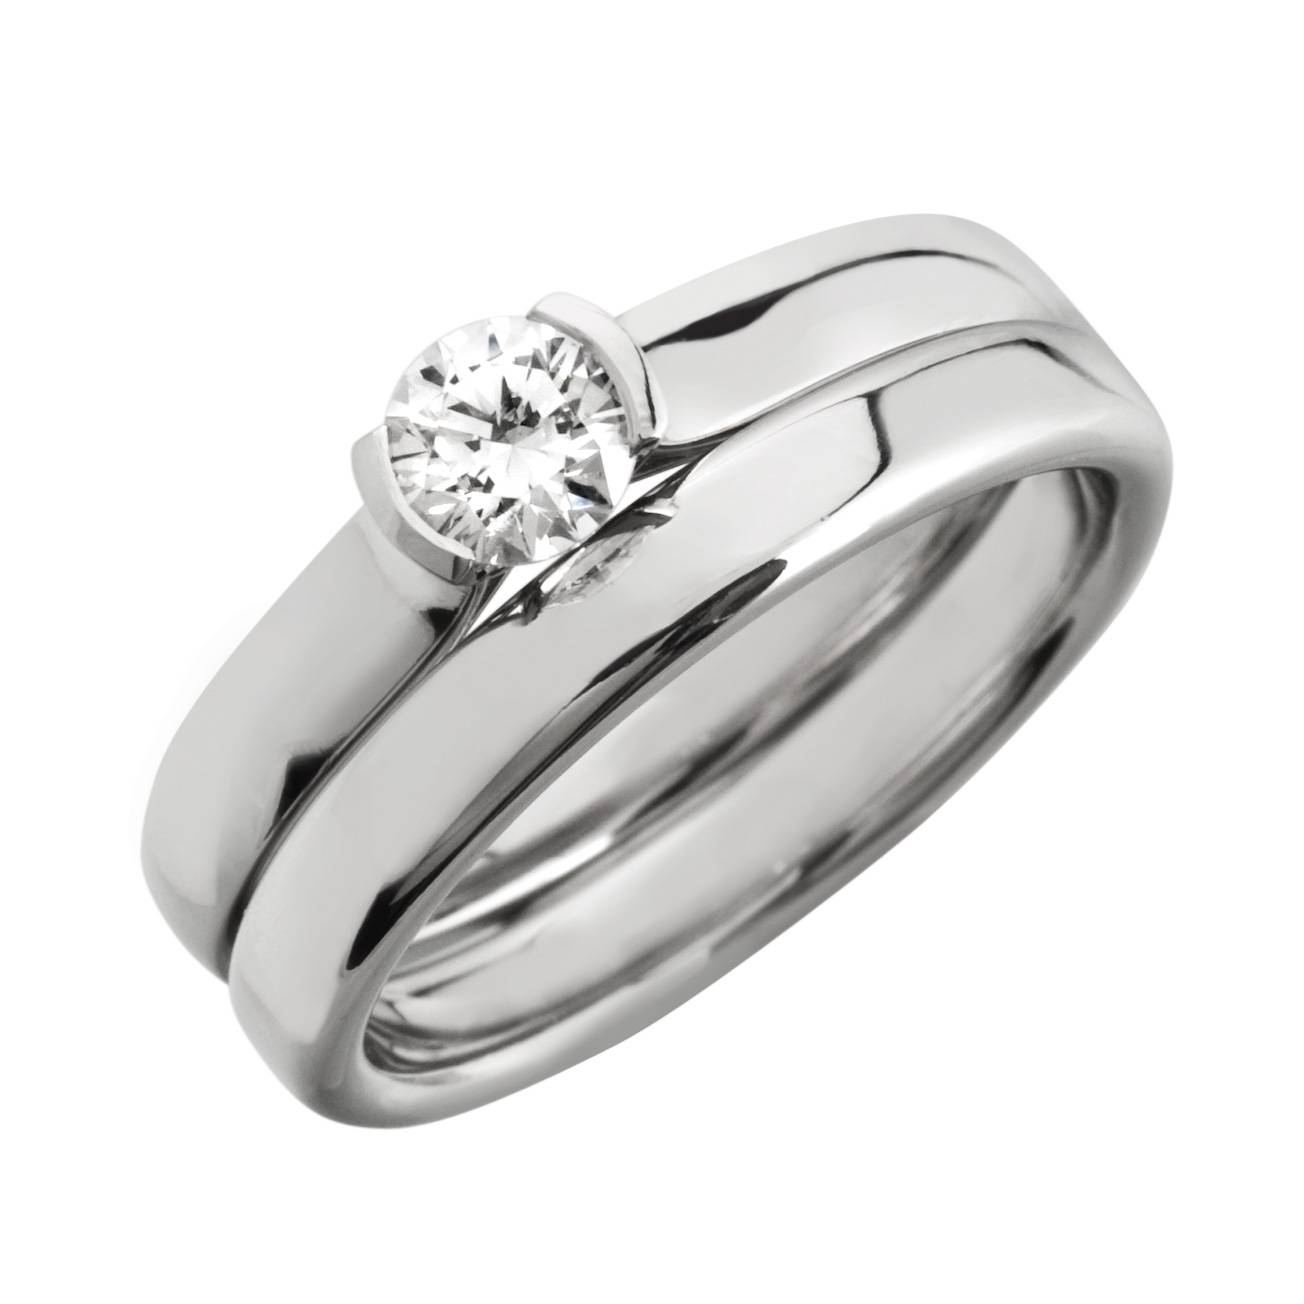 Wedding Rings : Wedding Ring And Engagement Ring Difference Intended For Engagement Marriage Rings (View 6 of 15)